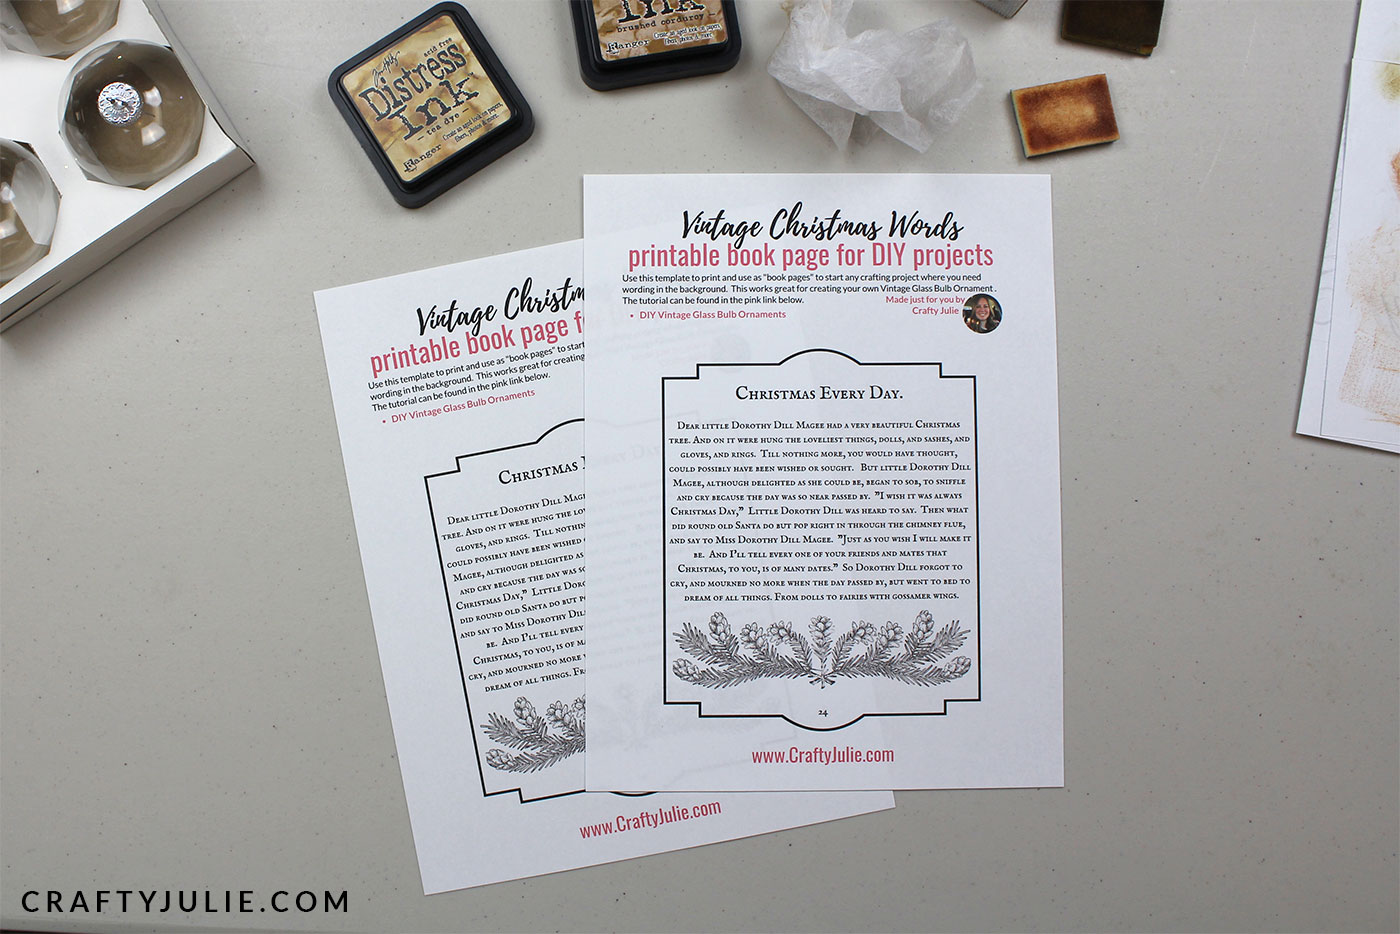 book page printable just printed